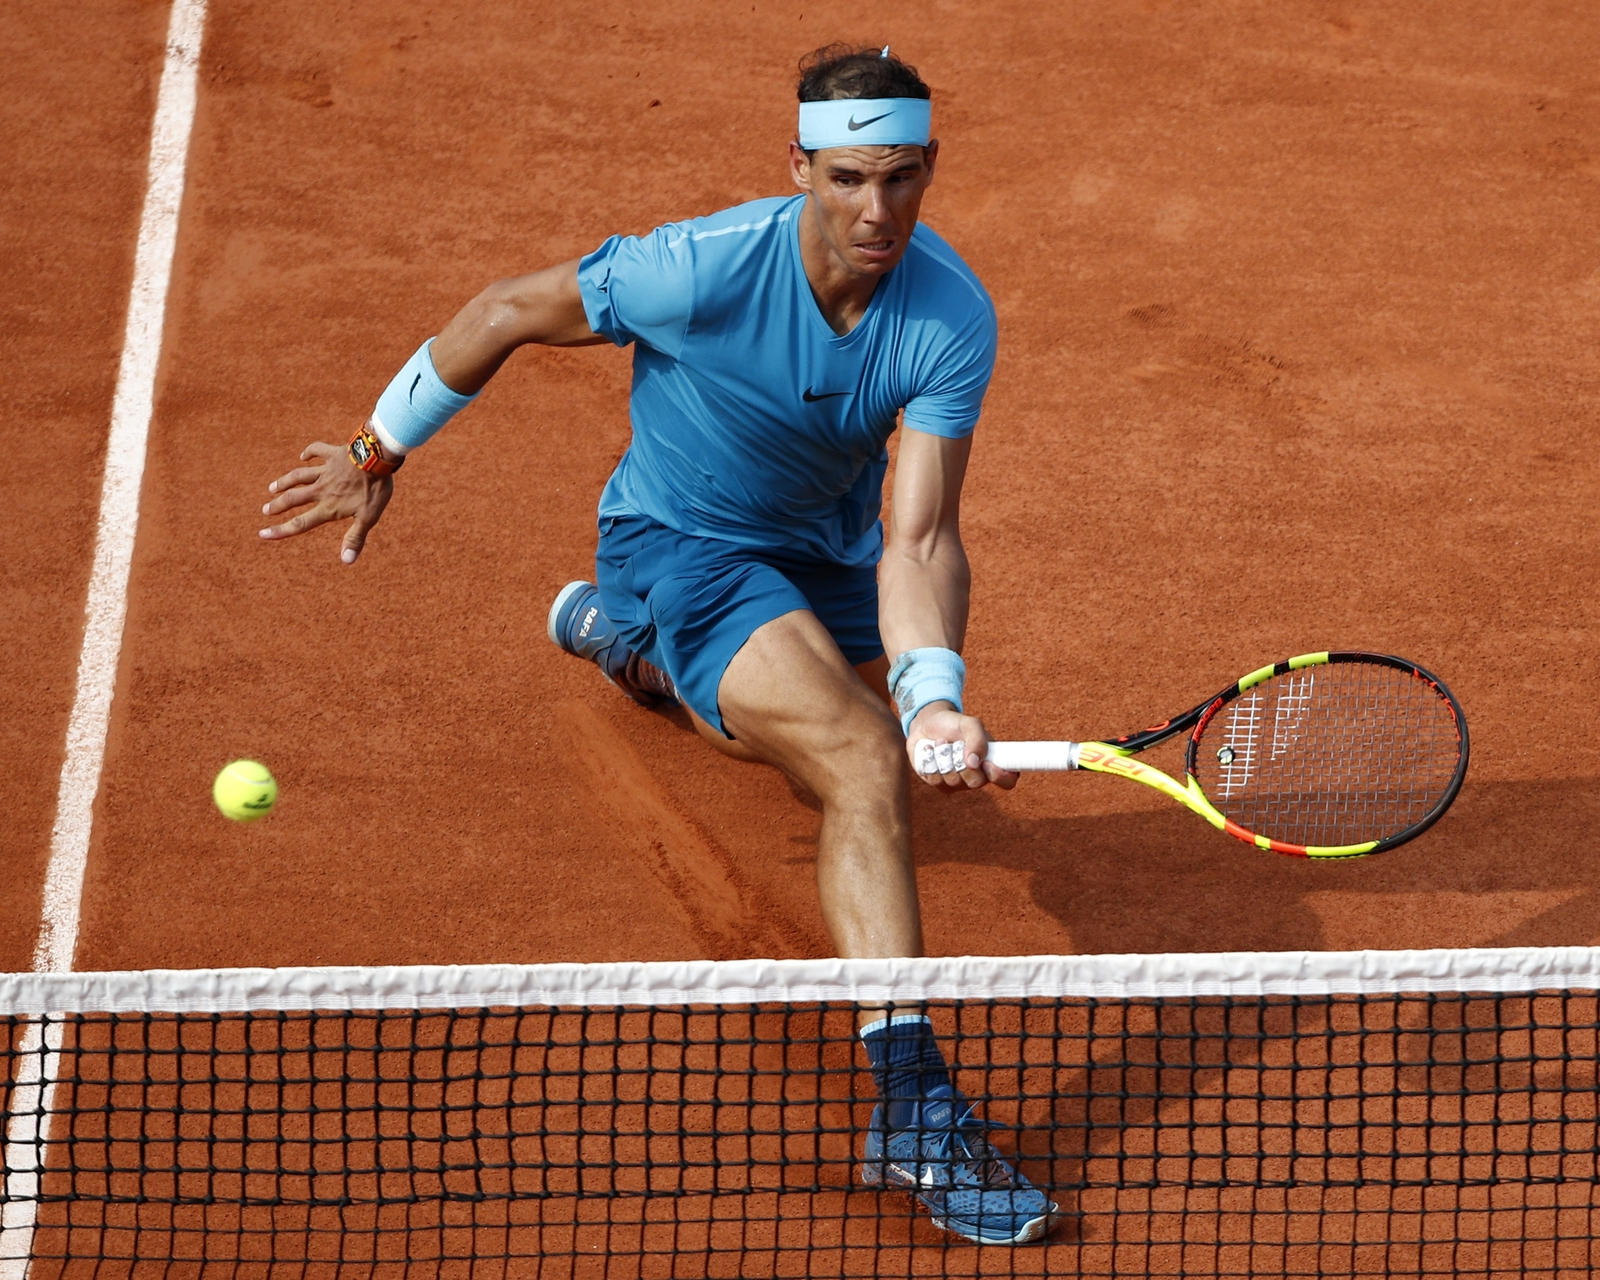 France-Tennis-French-Open-2617-5249-4575